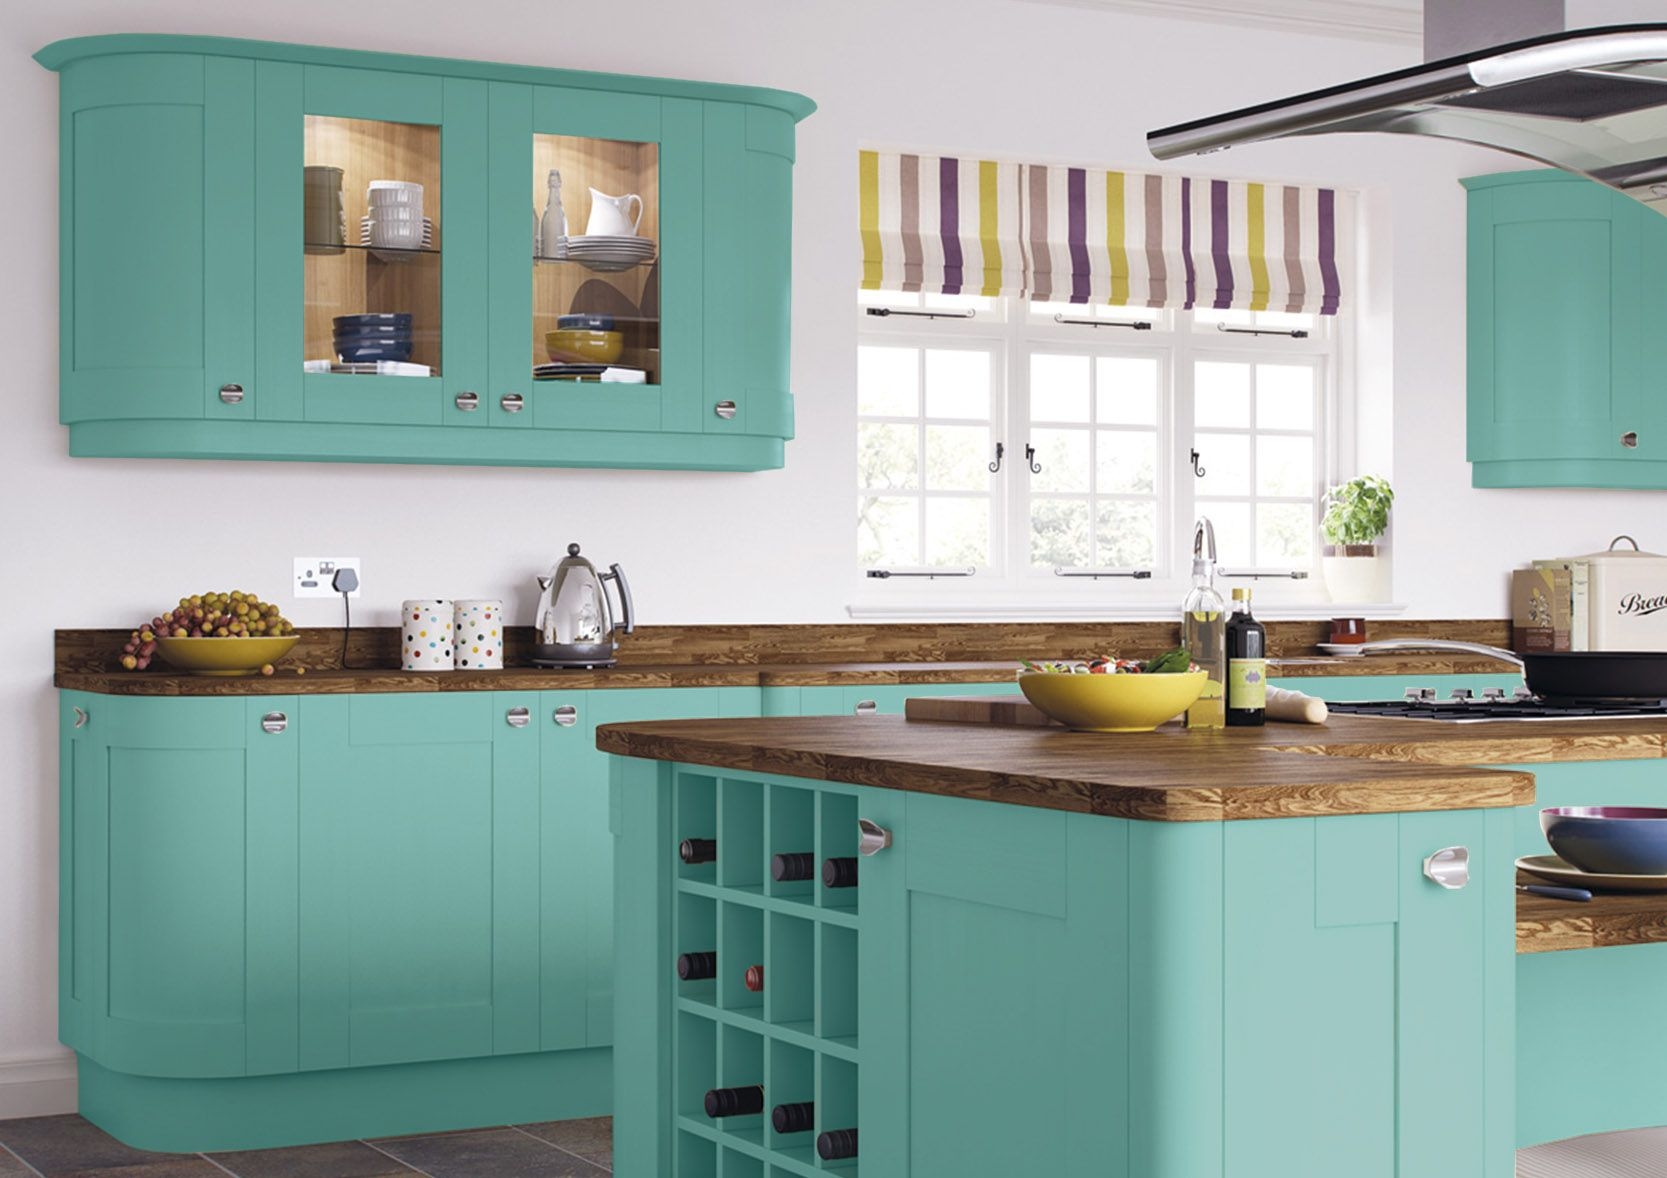 Ballroom Blue Roma Shaker Painted Kitchen Cupboard Doors at Kitchen ...